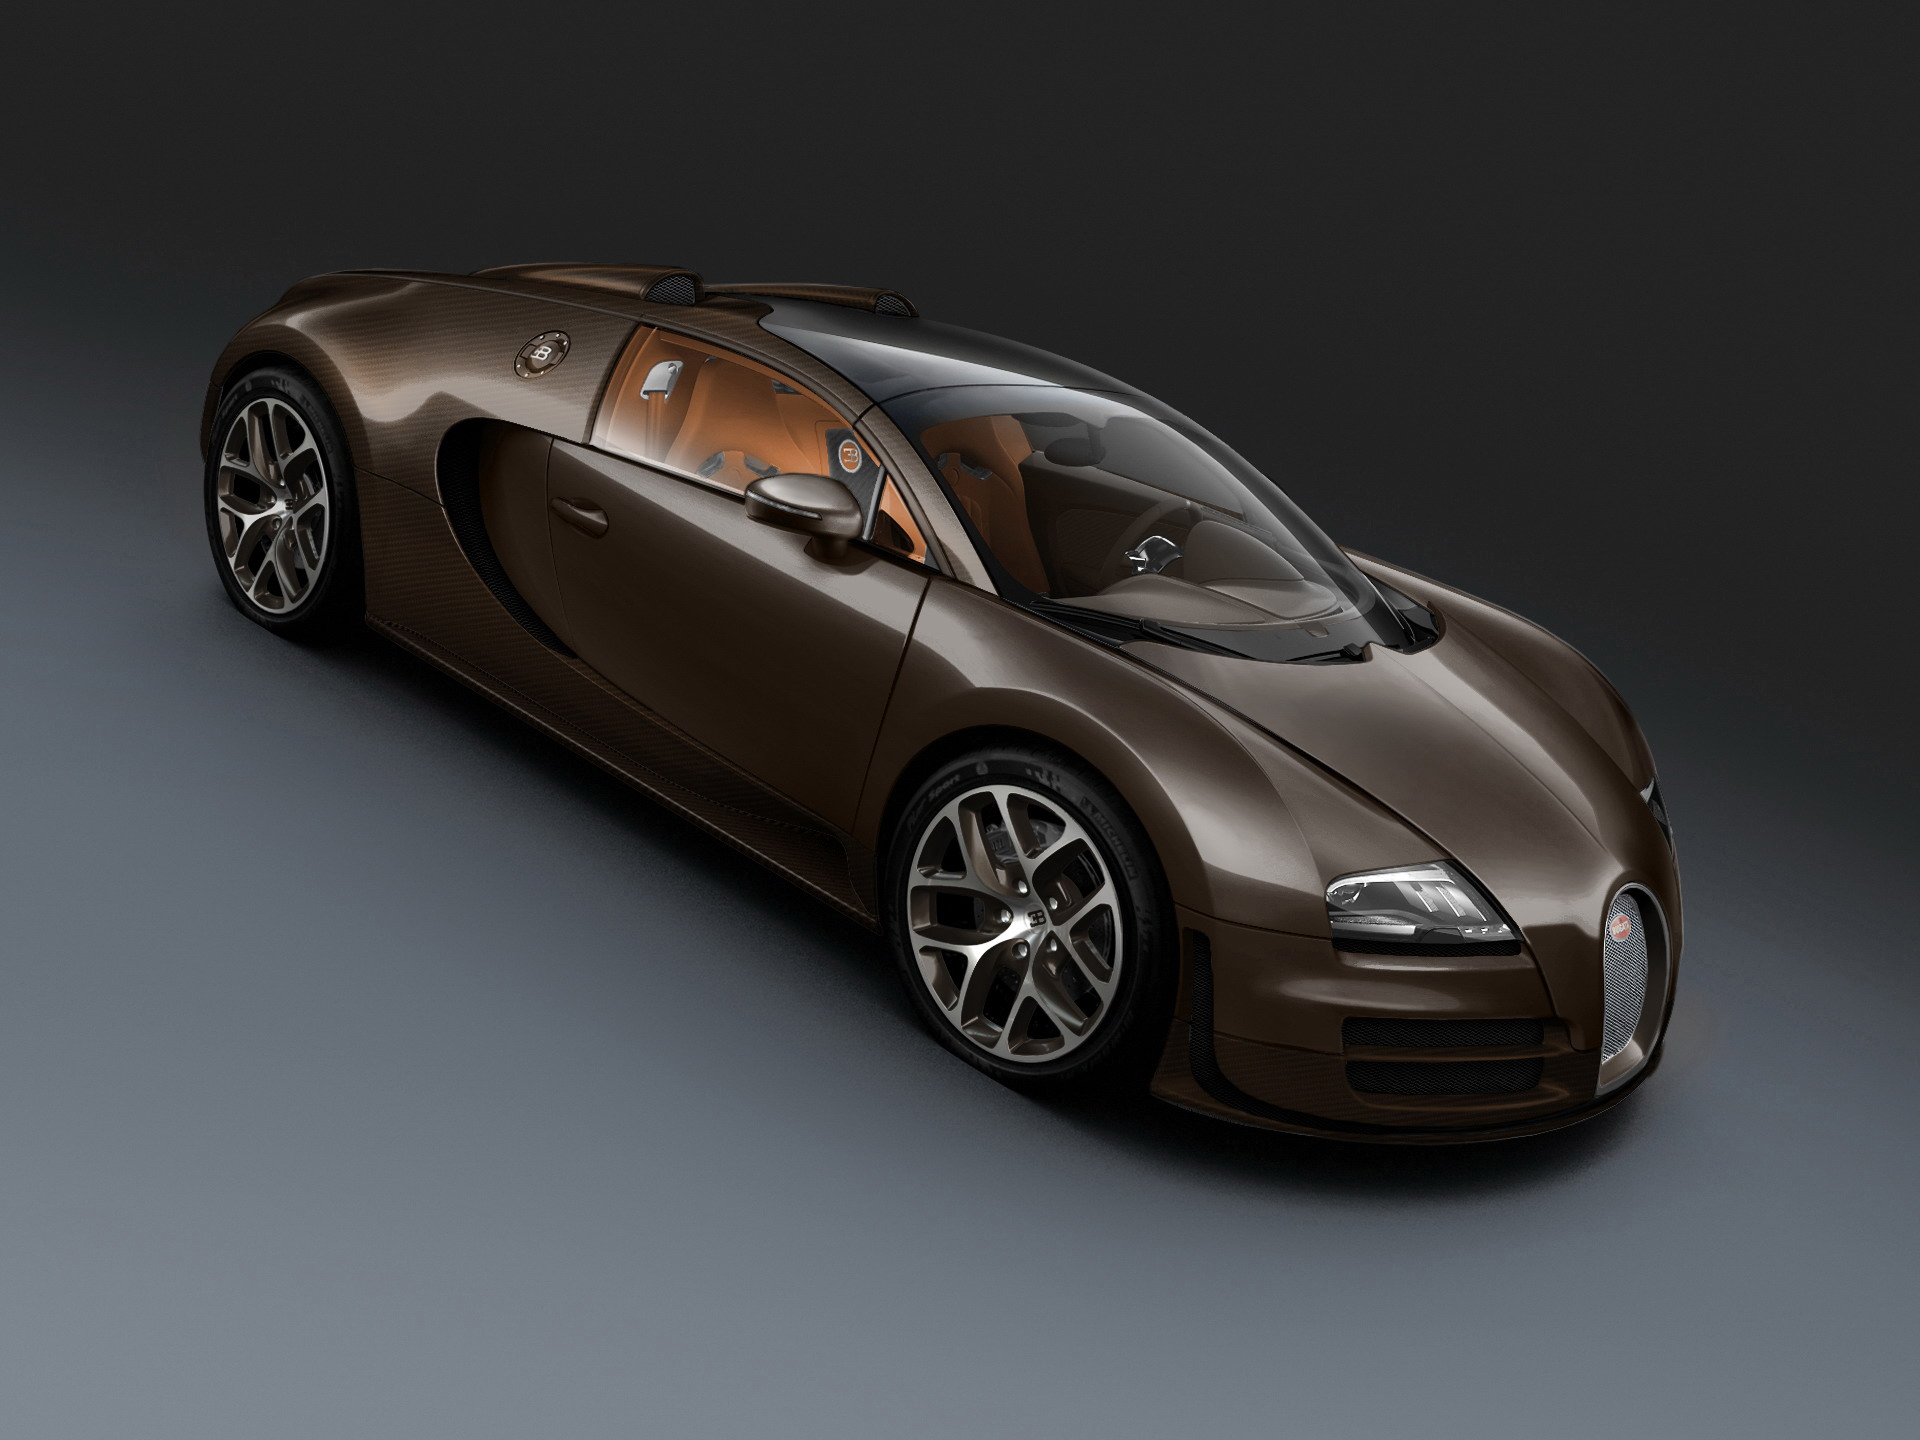 2013 bugatti veyron 16 4 grand sport vitesse fire finch. Black Bedroom Furniture Sets. Home Design Ideas